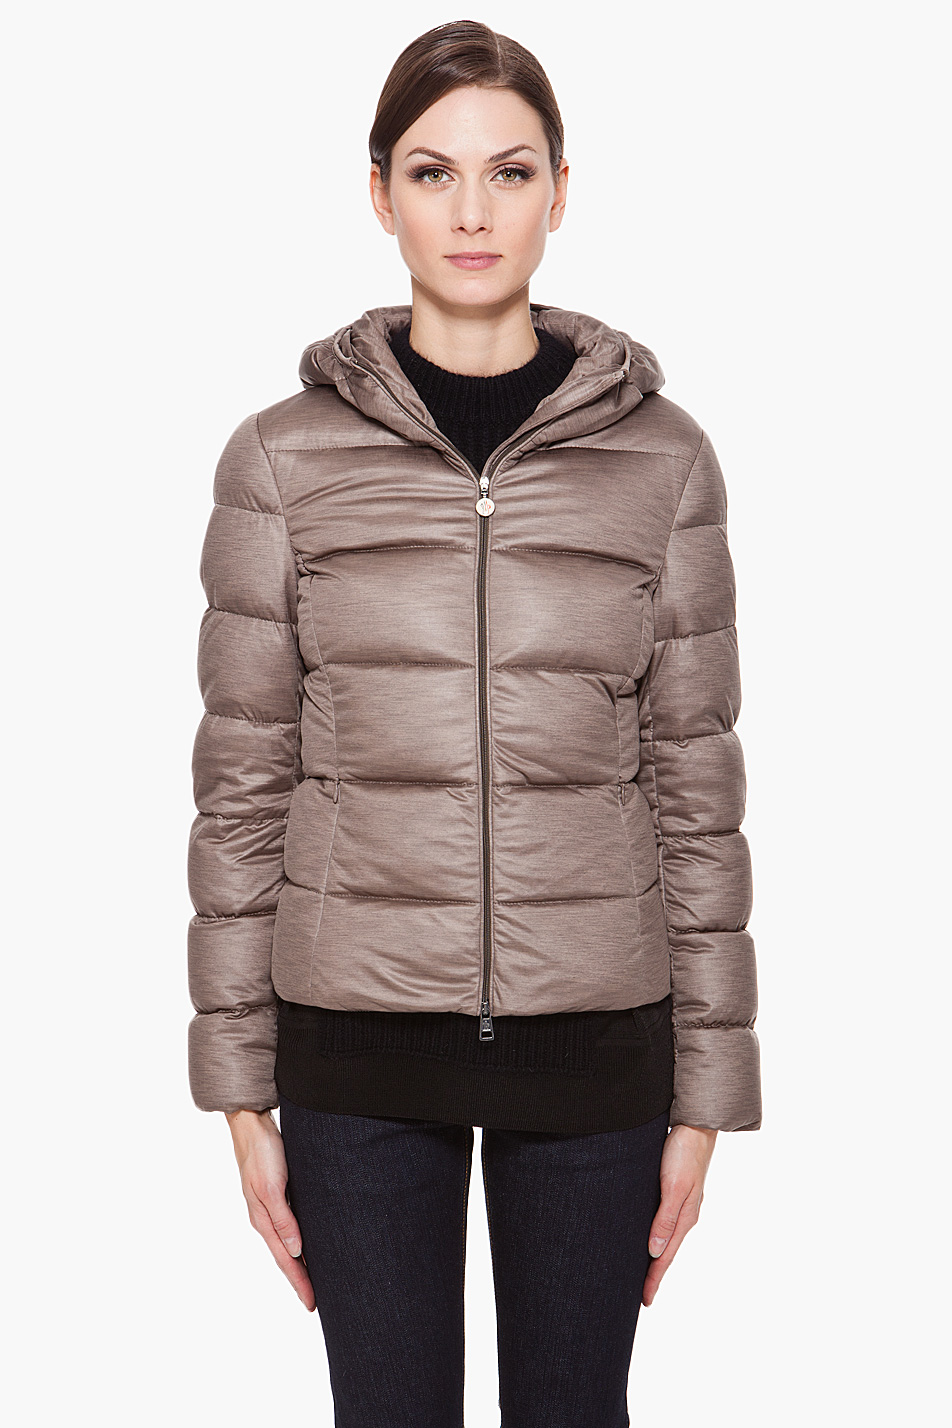 72aef3c7d Moncler Gray Hooded Jersey Jacket